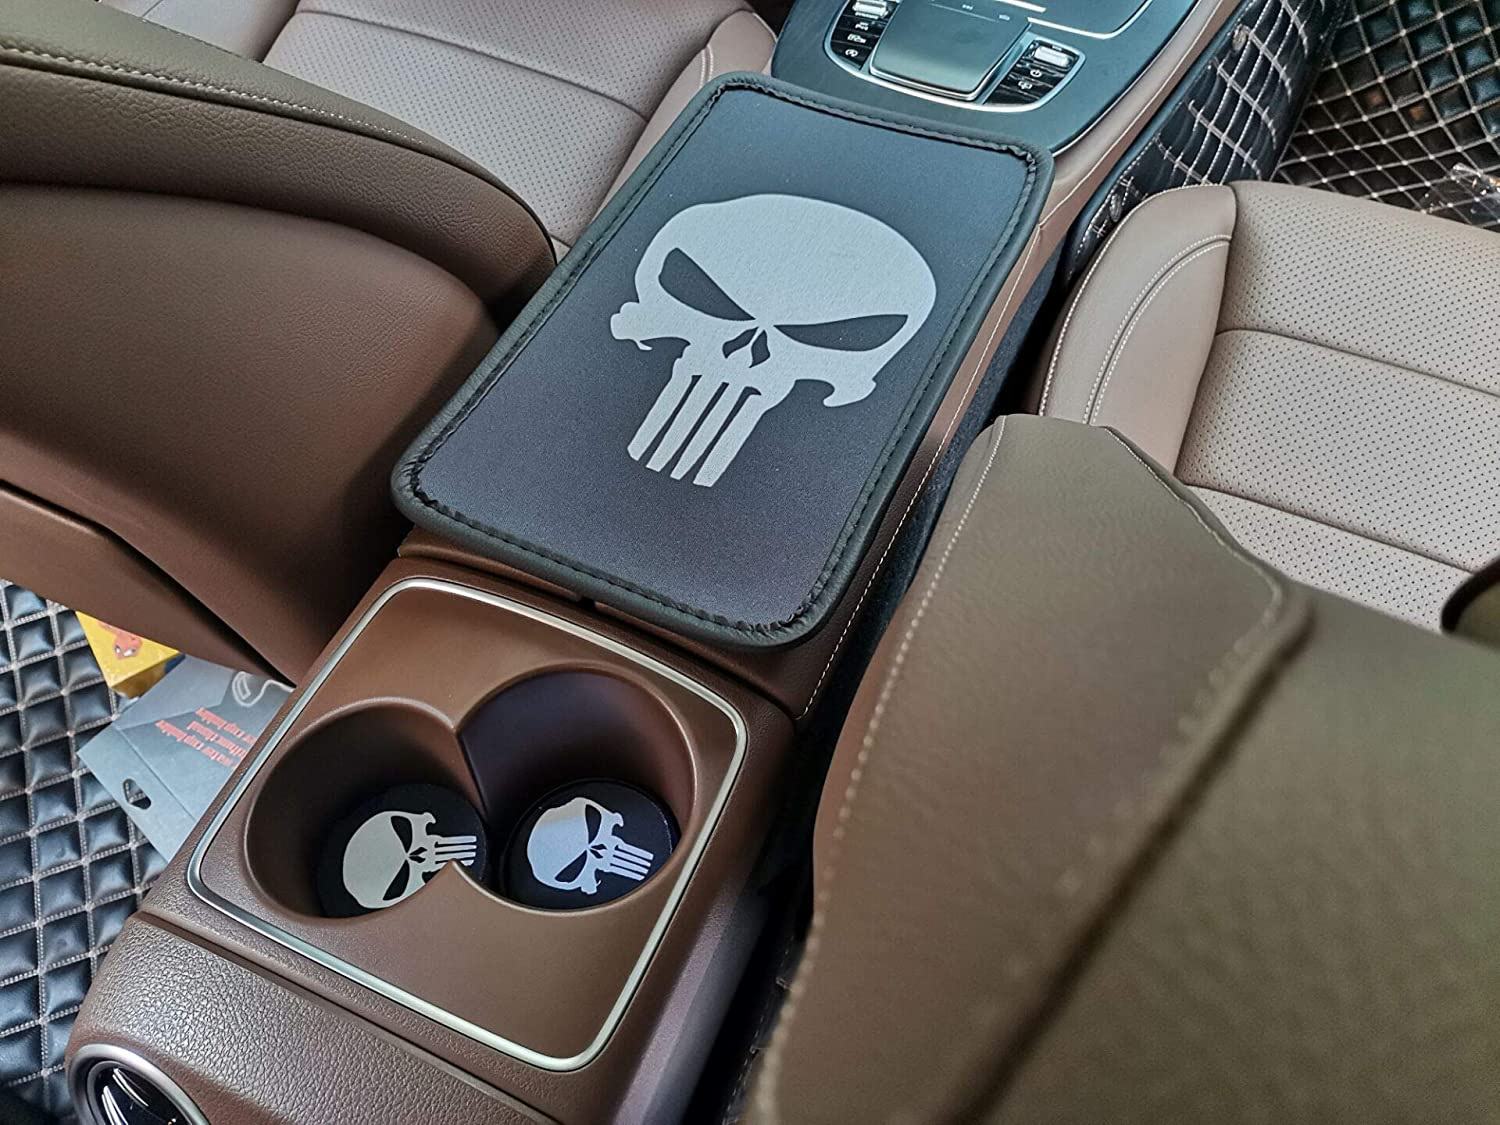 Lazynice Car Center Armrest Cushion Mat Pad with Car Interior Water Cup Coaster Combo Set -1PCS Universal Vehicle Center Console Armrest Cover + 2PCS Automobile Water Cup Cushion (Punisher)